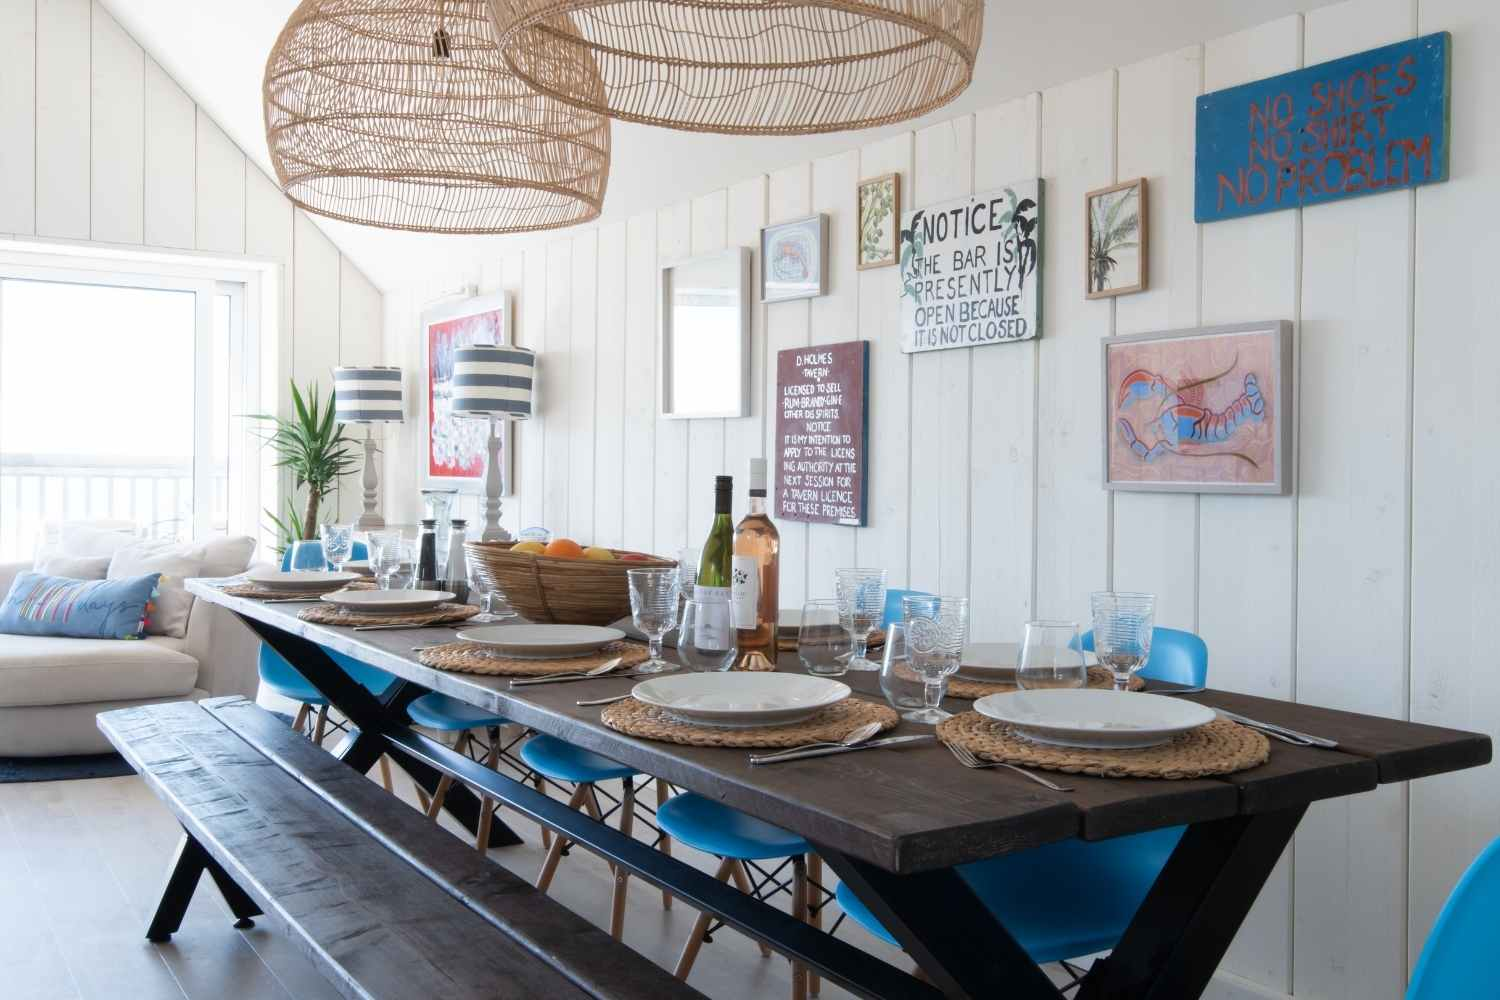 Enjoy your meals with views of the beach and sea